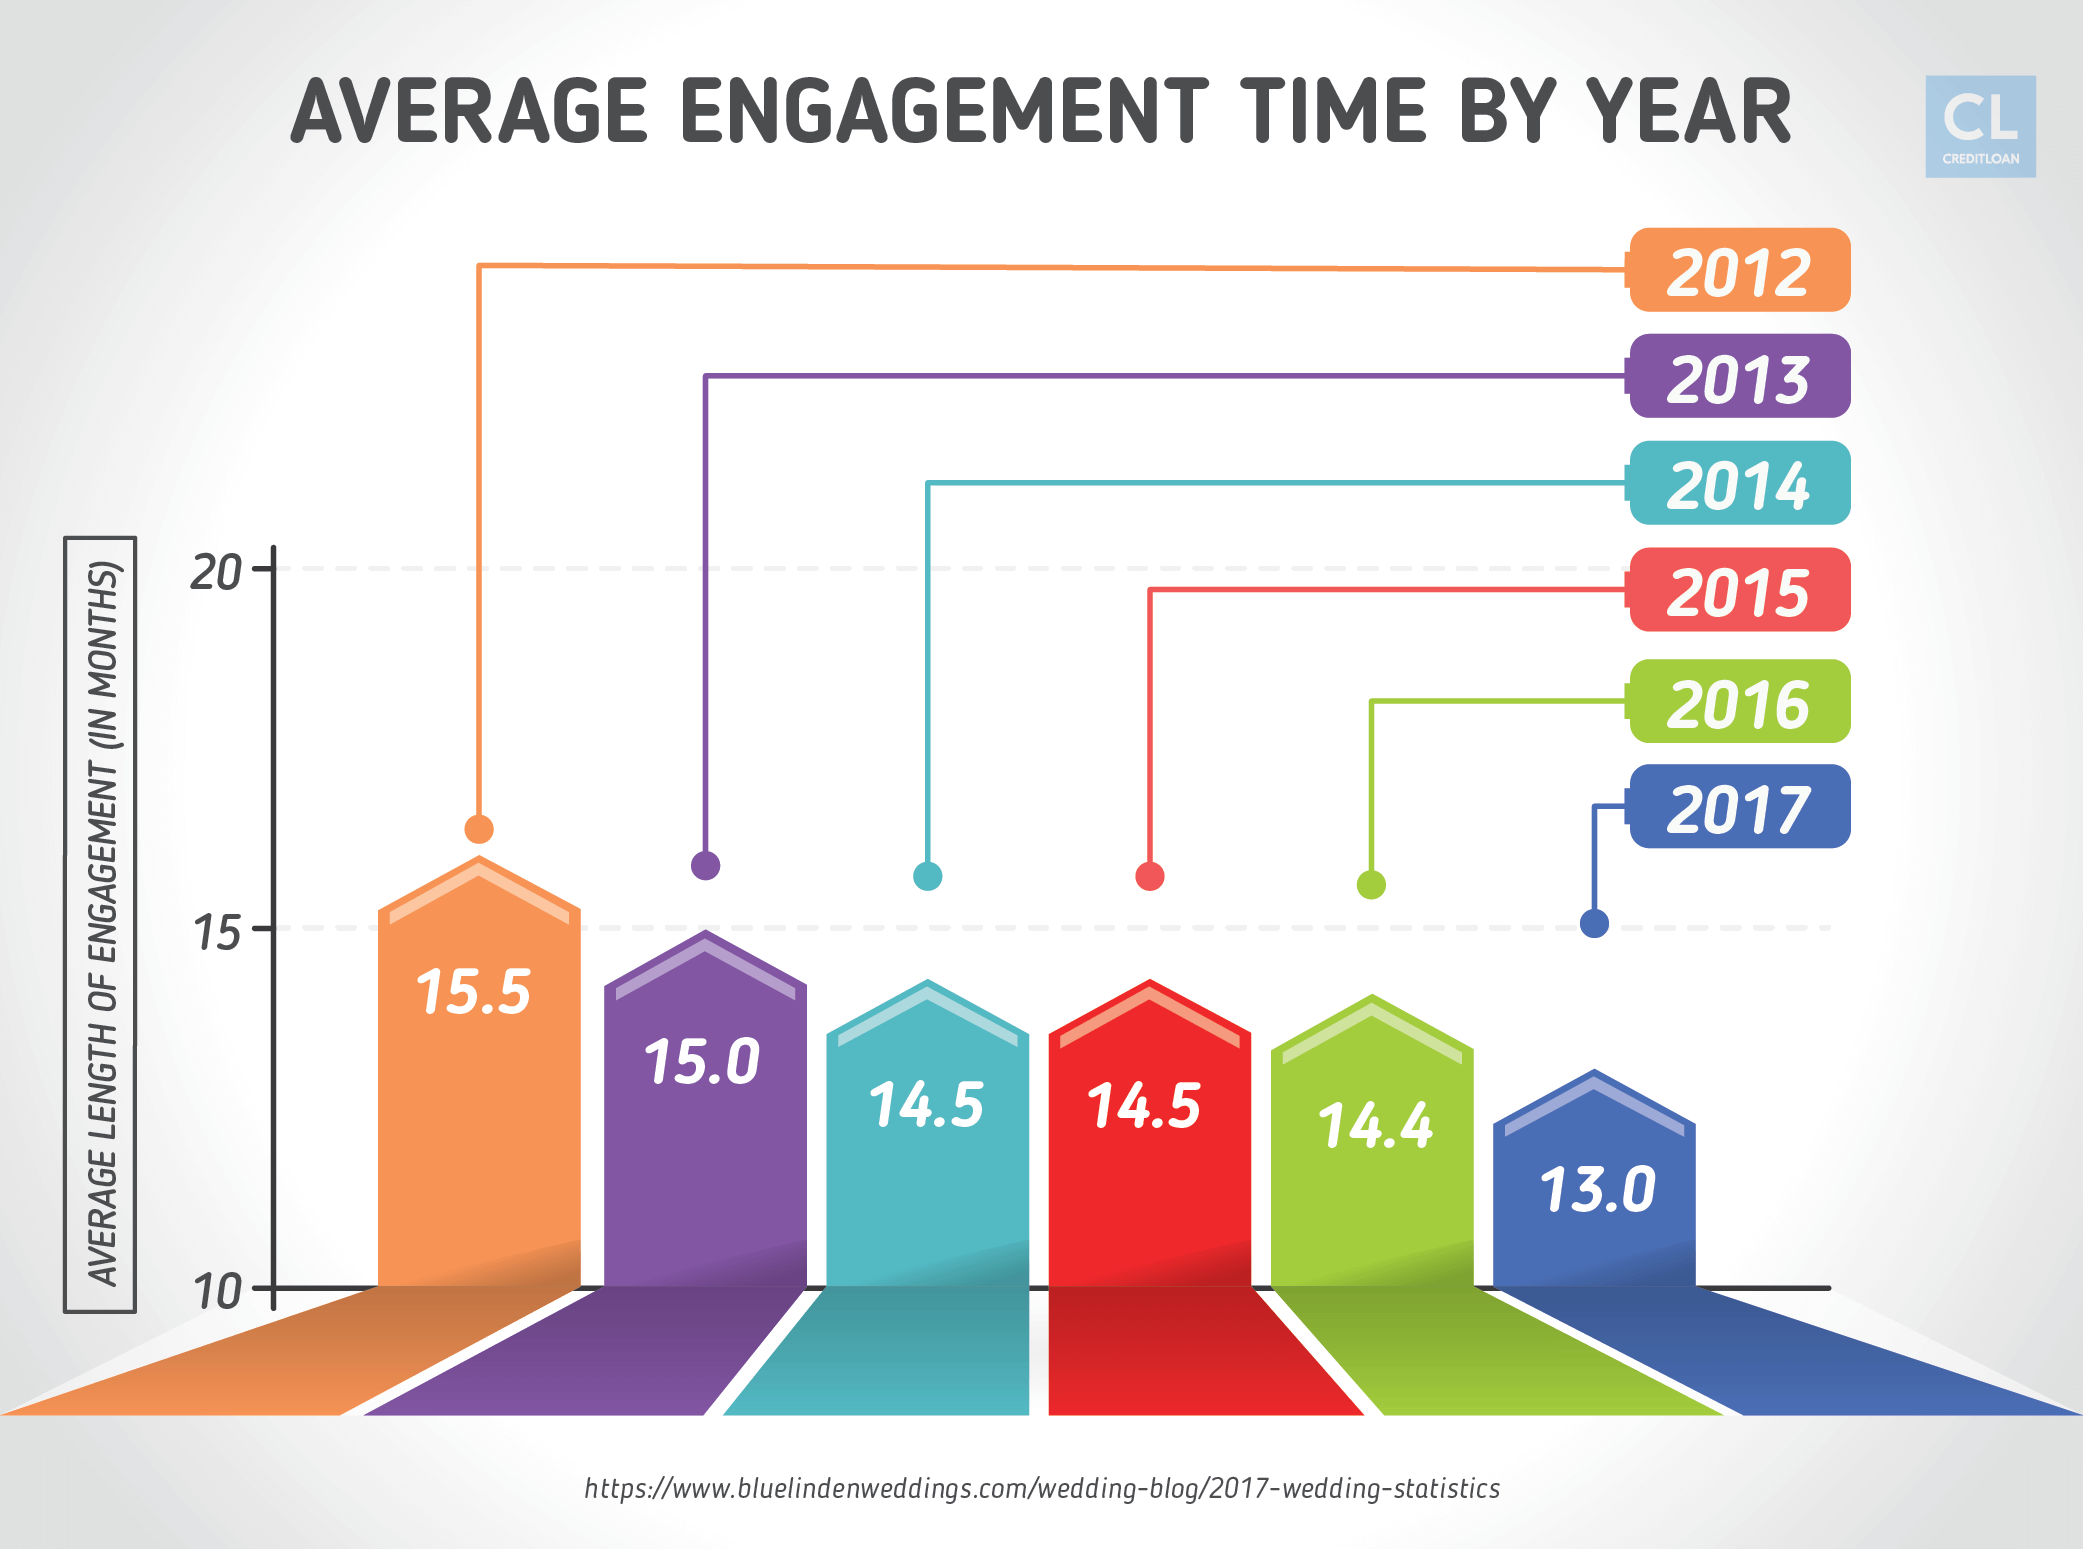 Average Engagement Time from 2012-2017